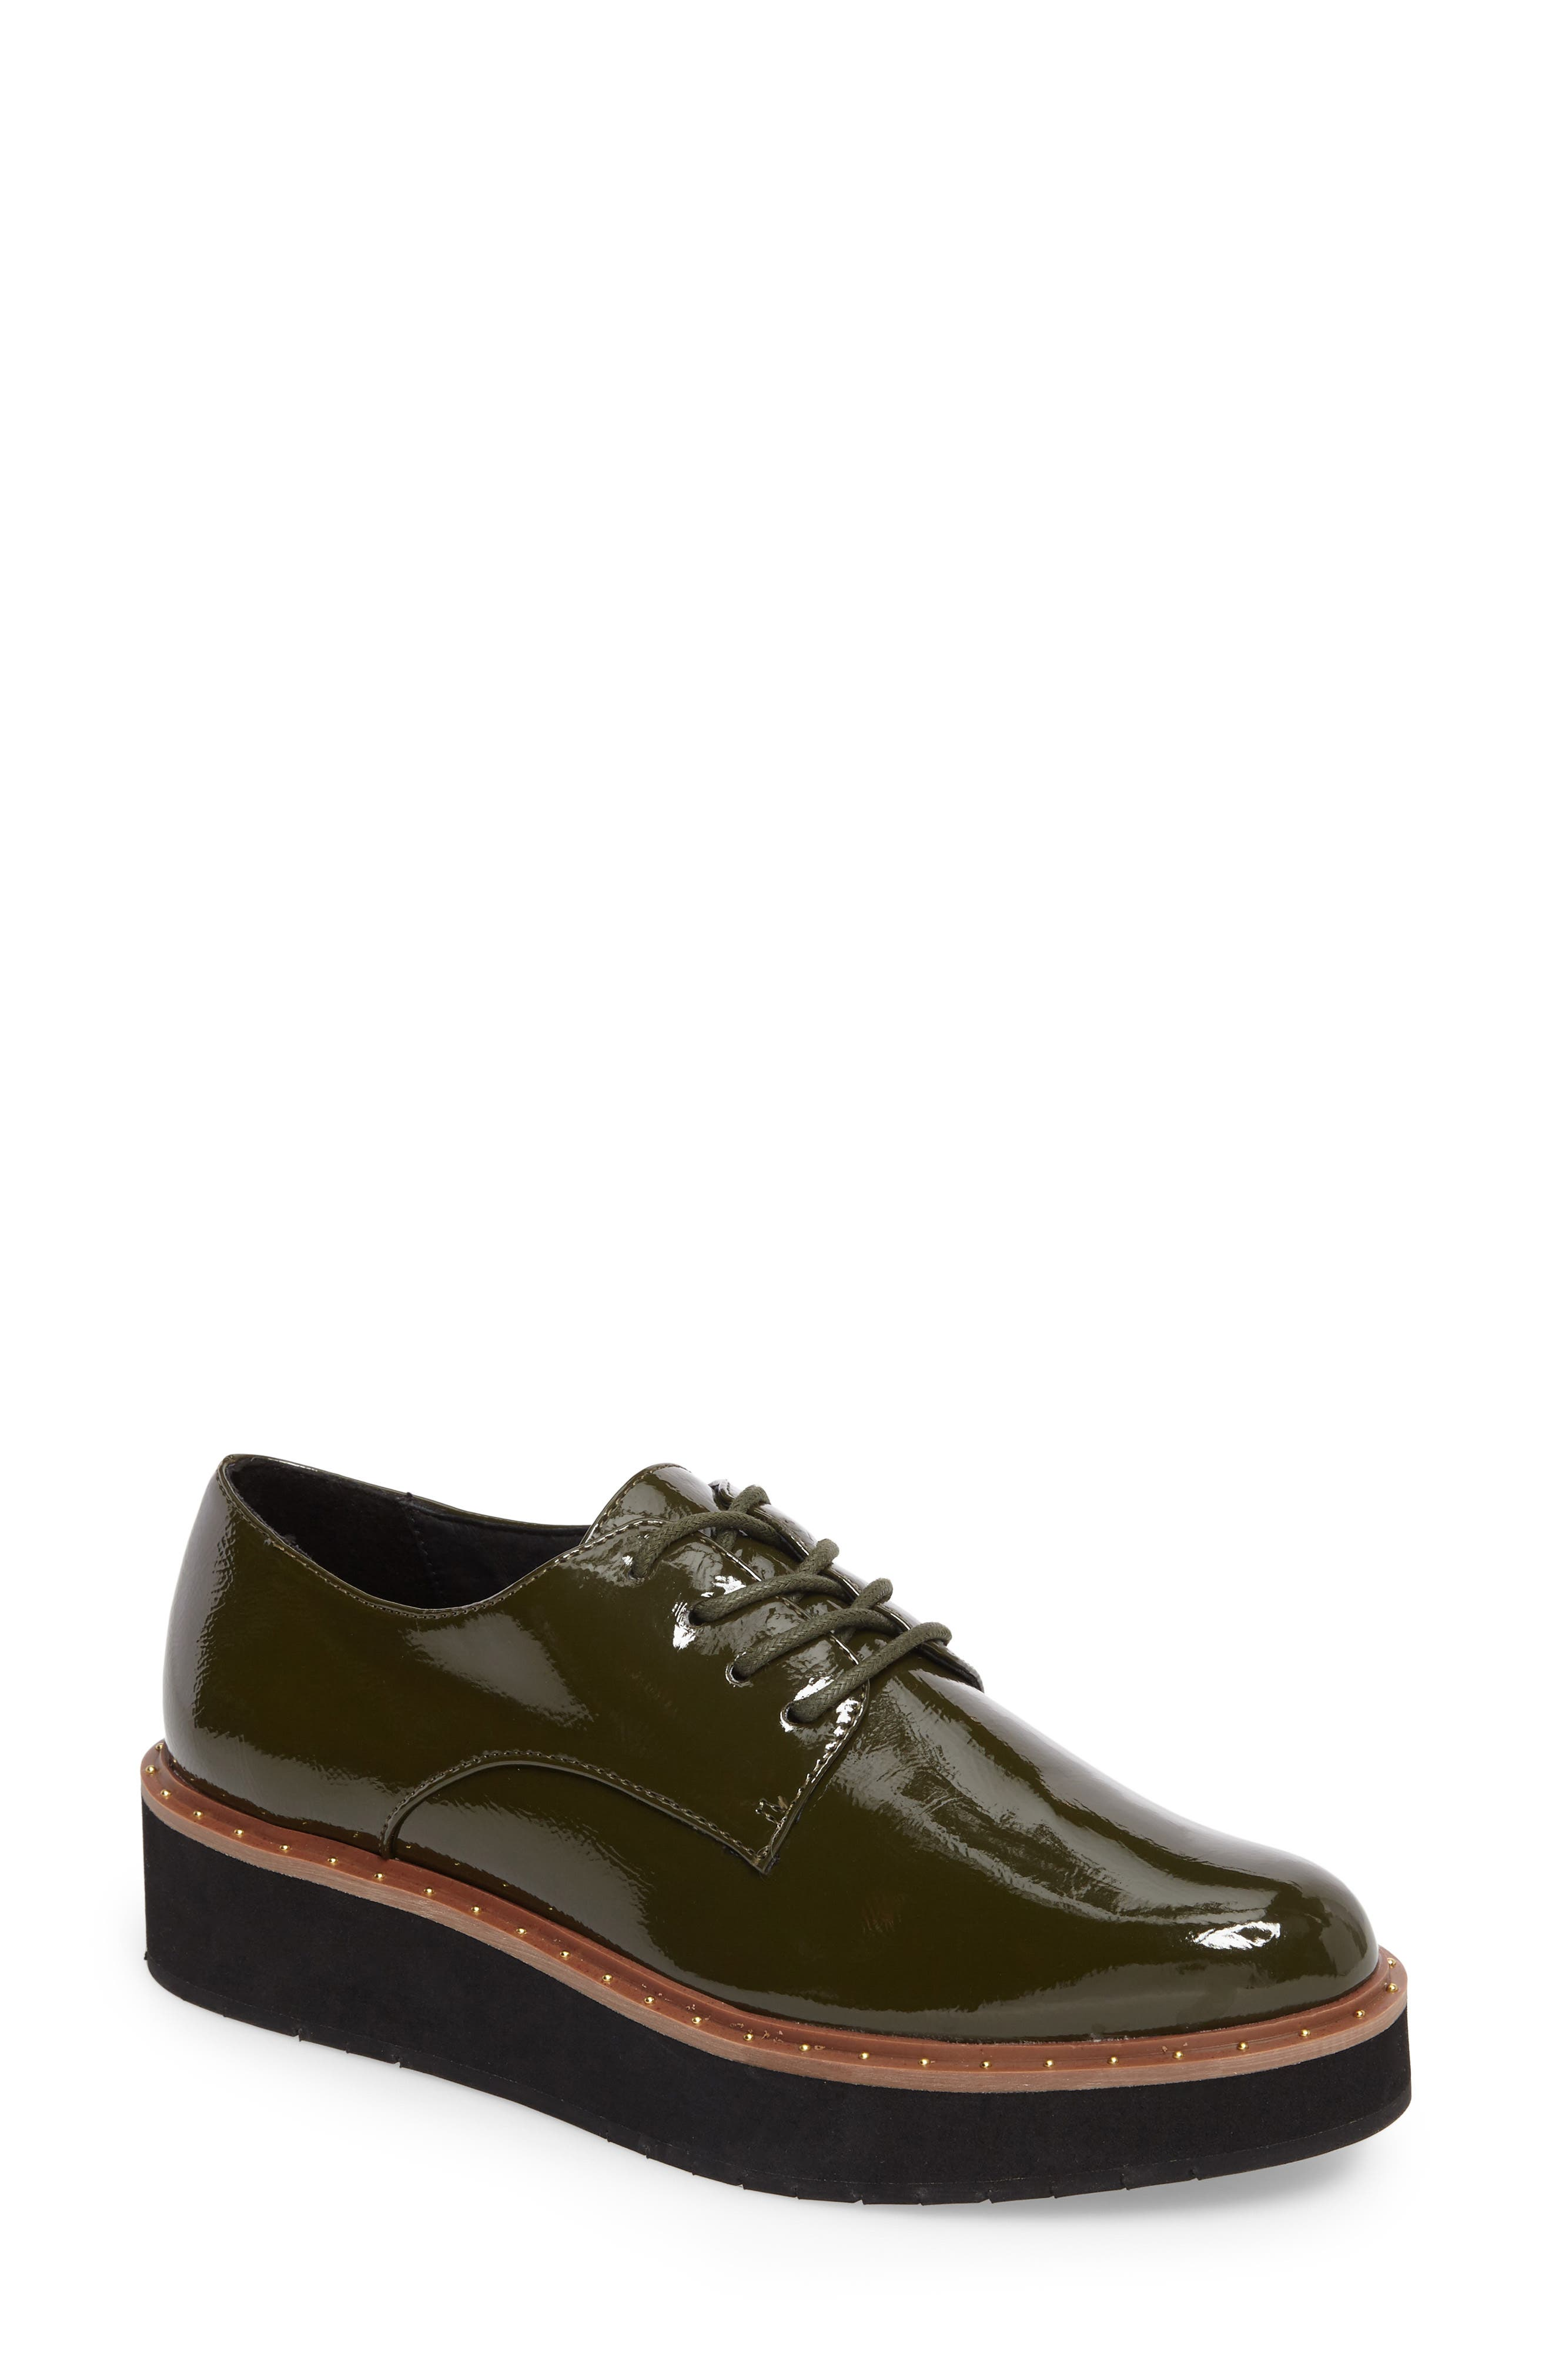 CHINESE LAUNDRY, Cecilia Platform Oxford, Main thumbnail 1, color, OLIVE